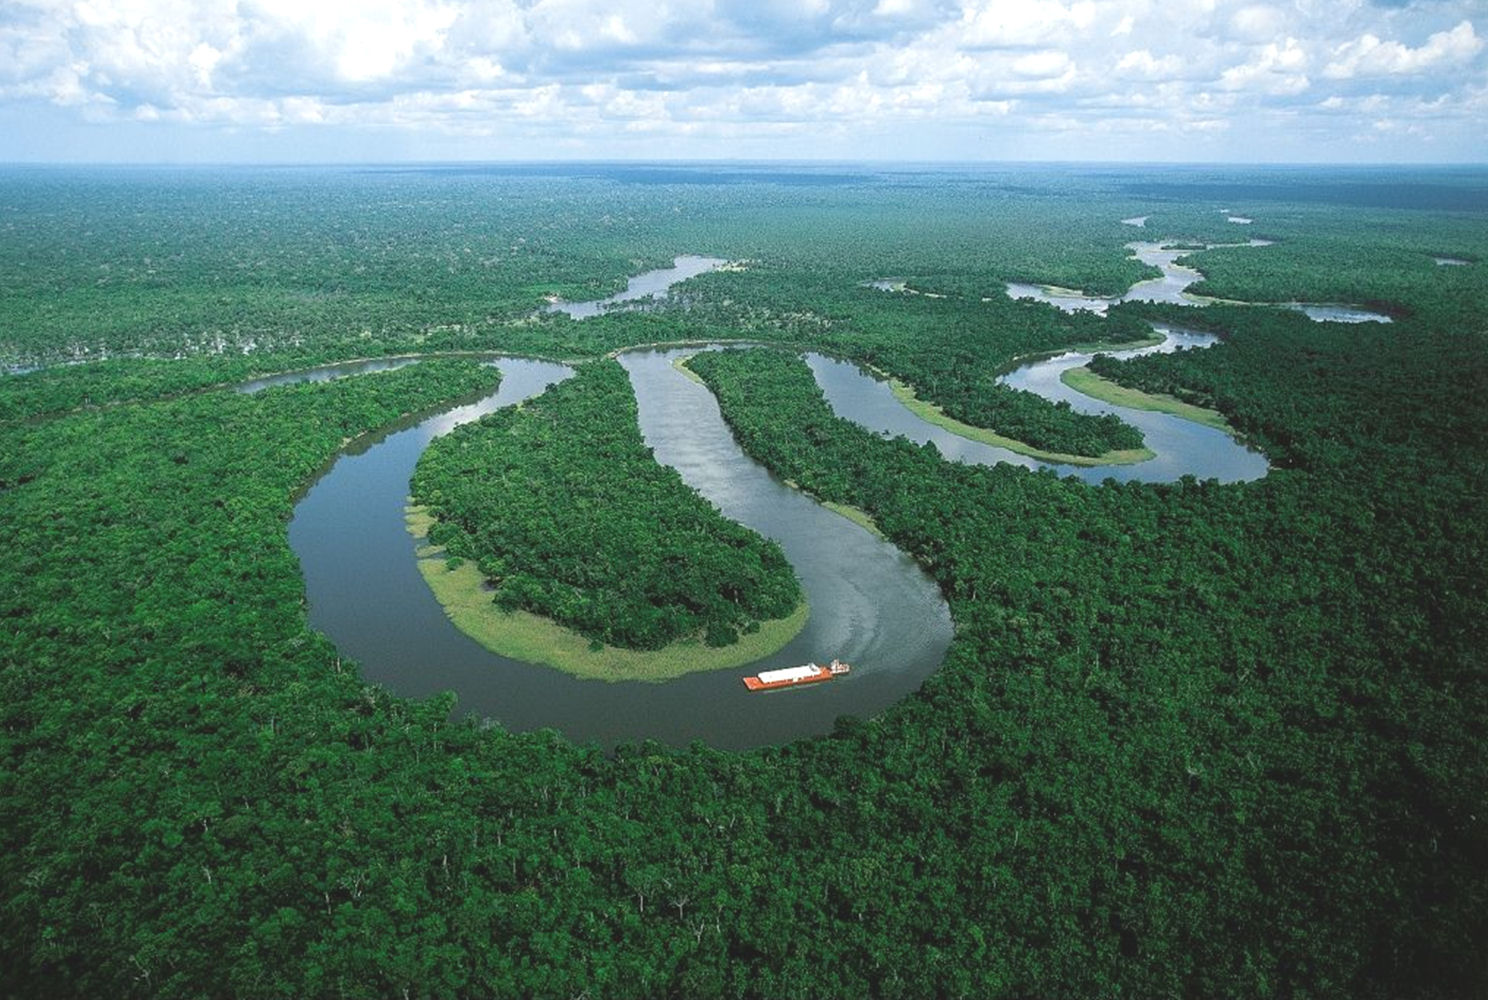 Amazon_river_more_oxbow_river_shape.jpg